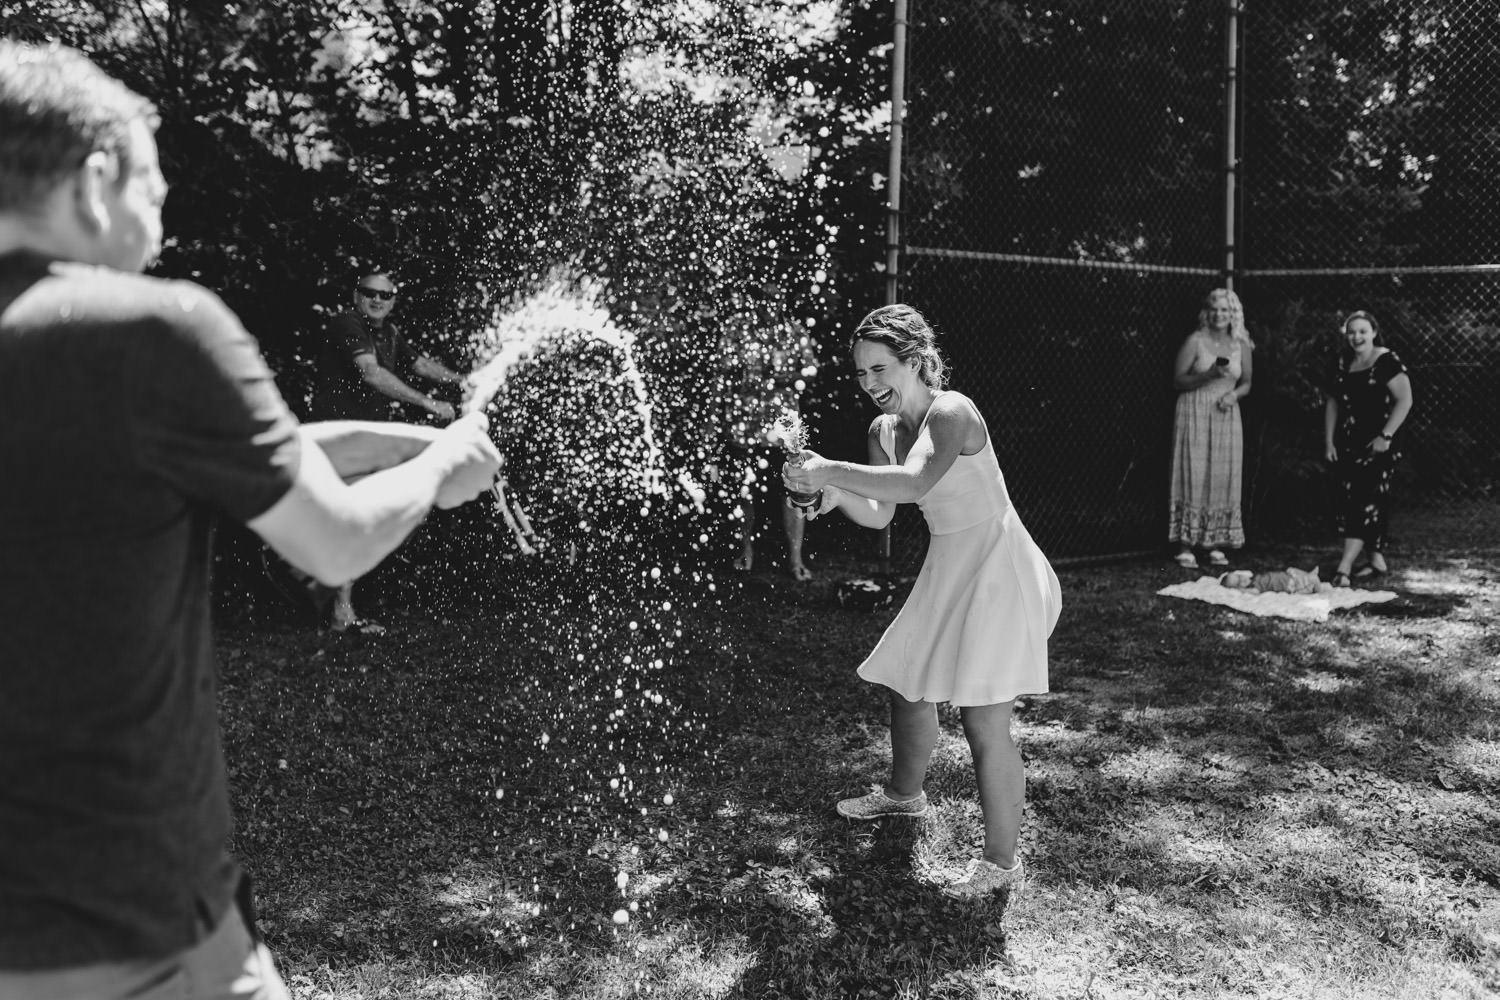 bride and groom spray champagne at one another